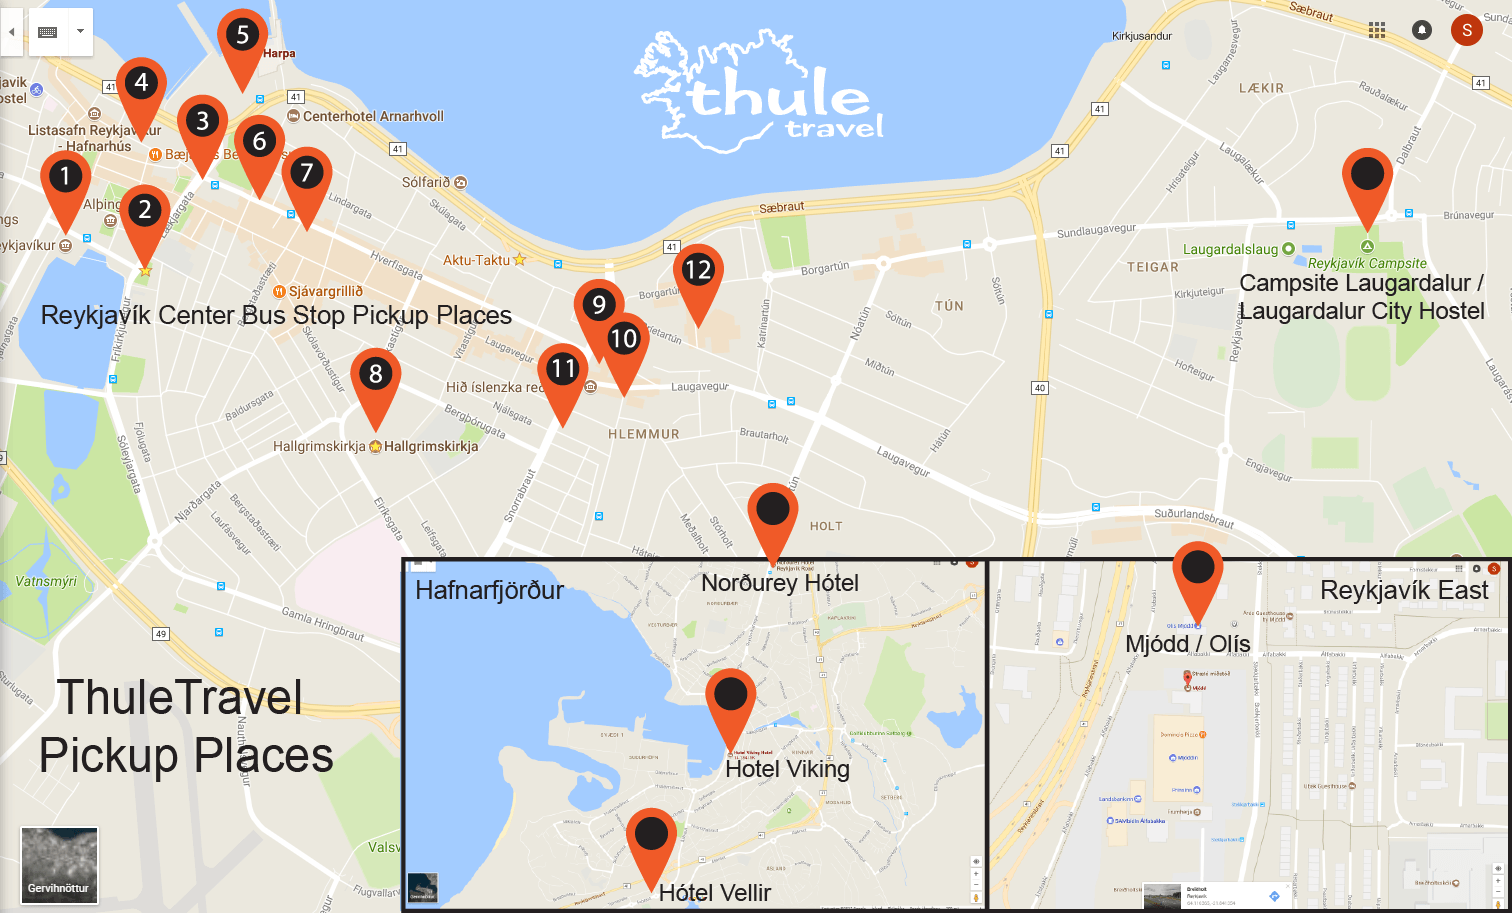 ThuleTravel Pickup Places